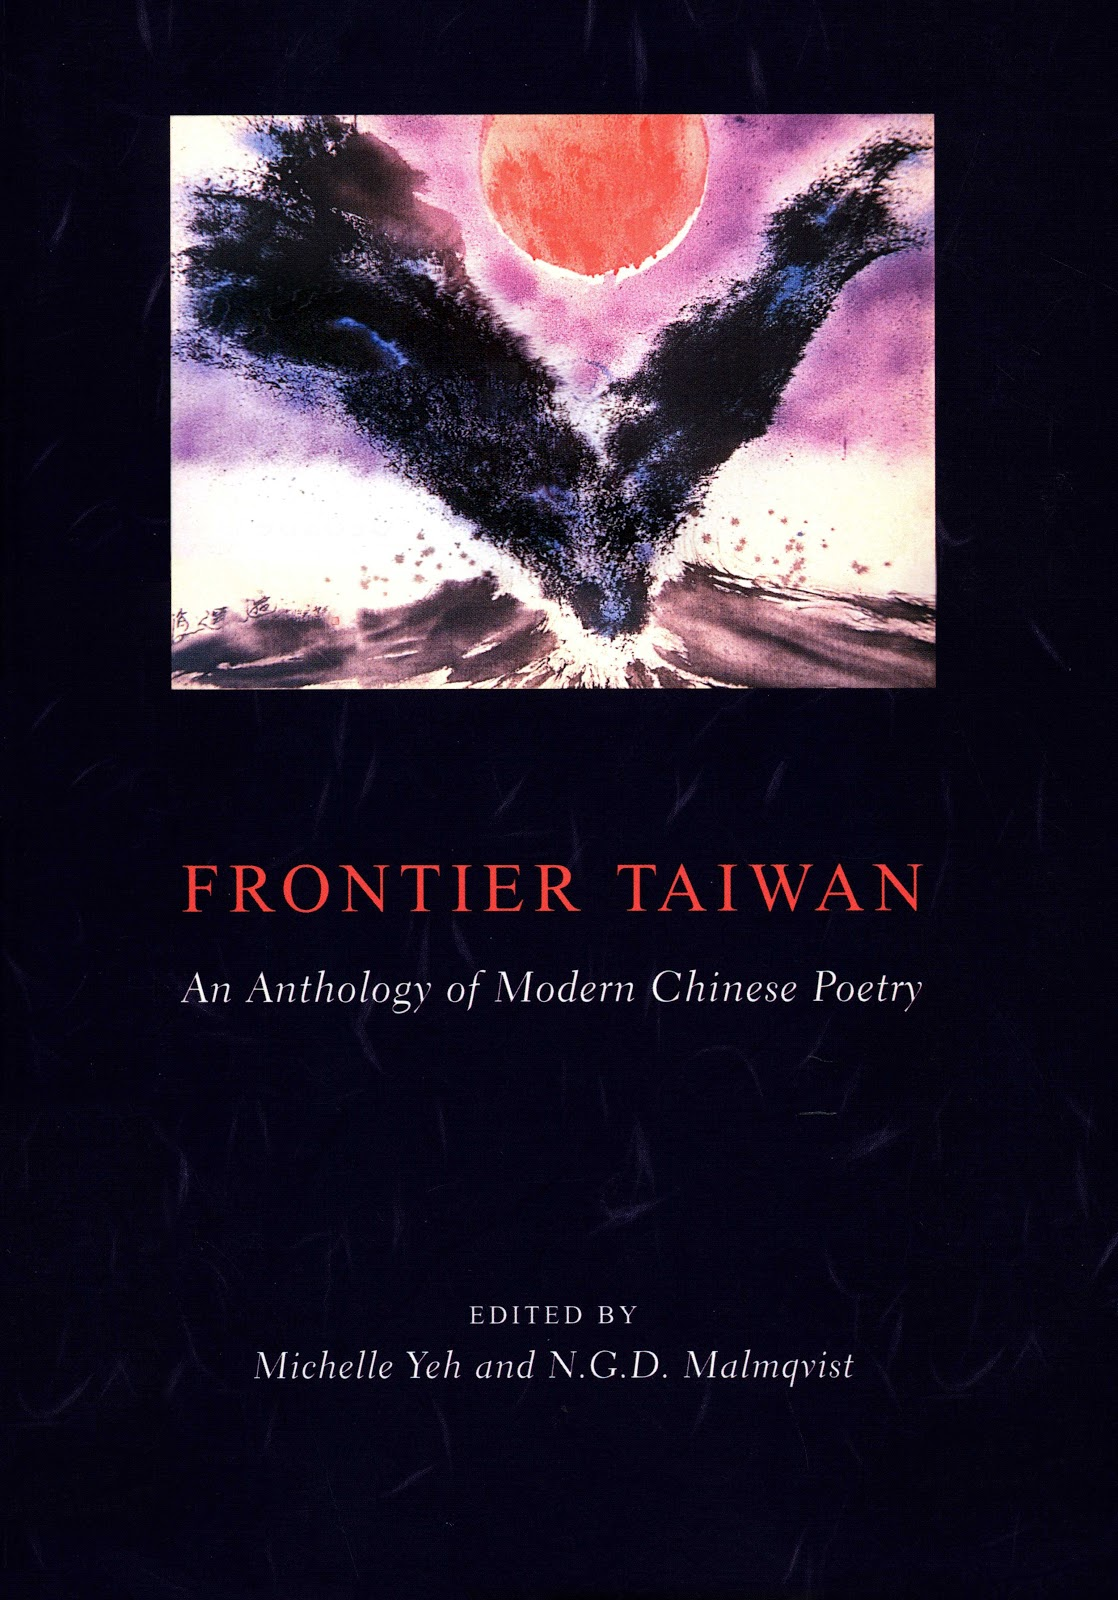 Frontier Taiwan: An Anthology of Modern Chinese Poetry